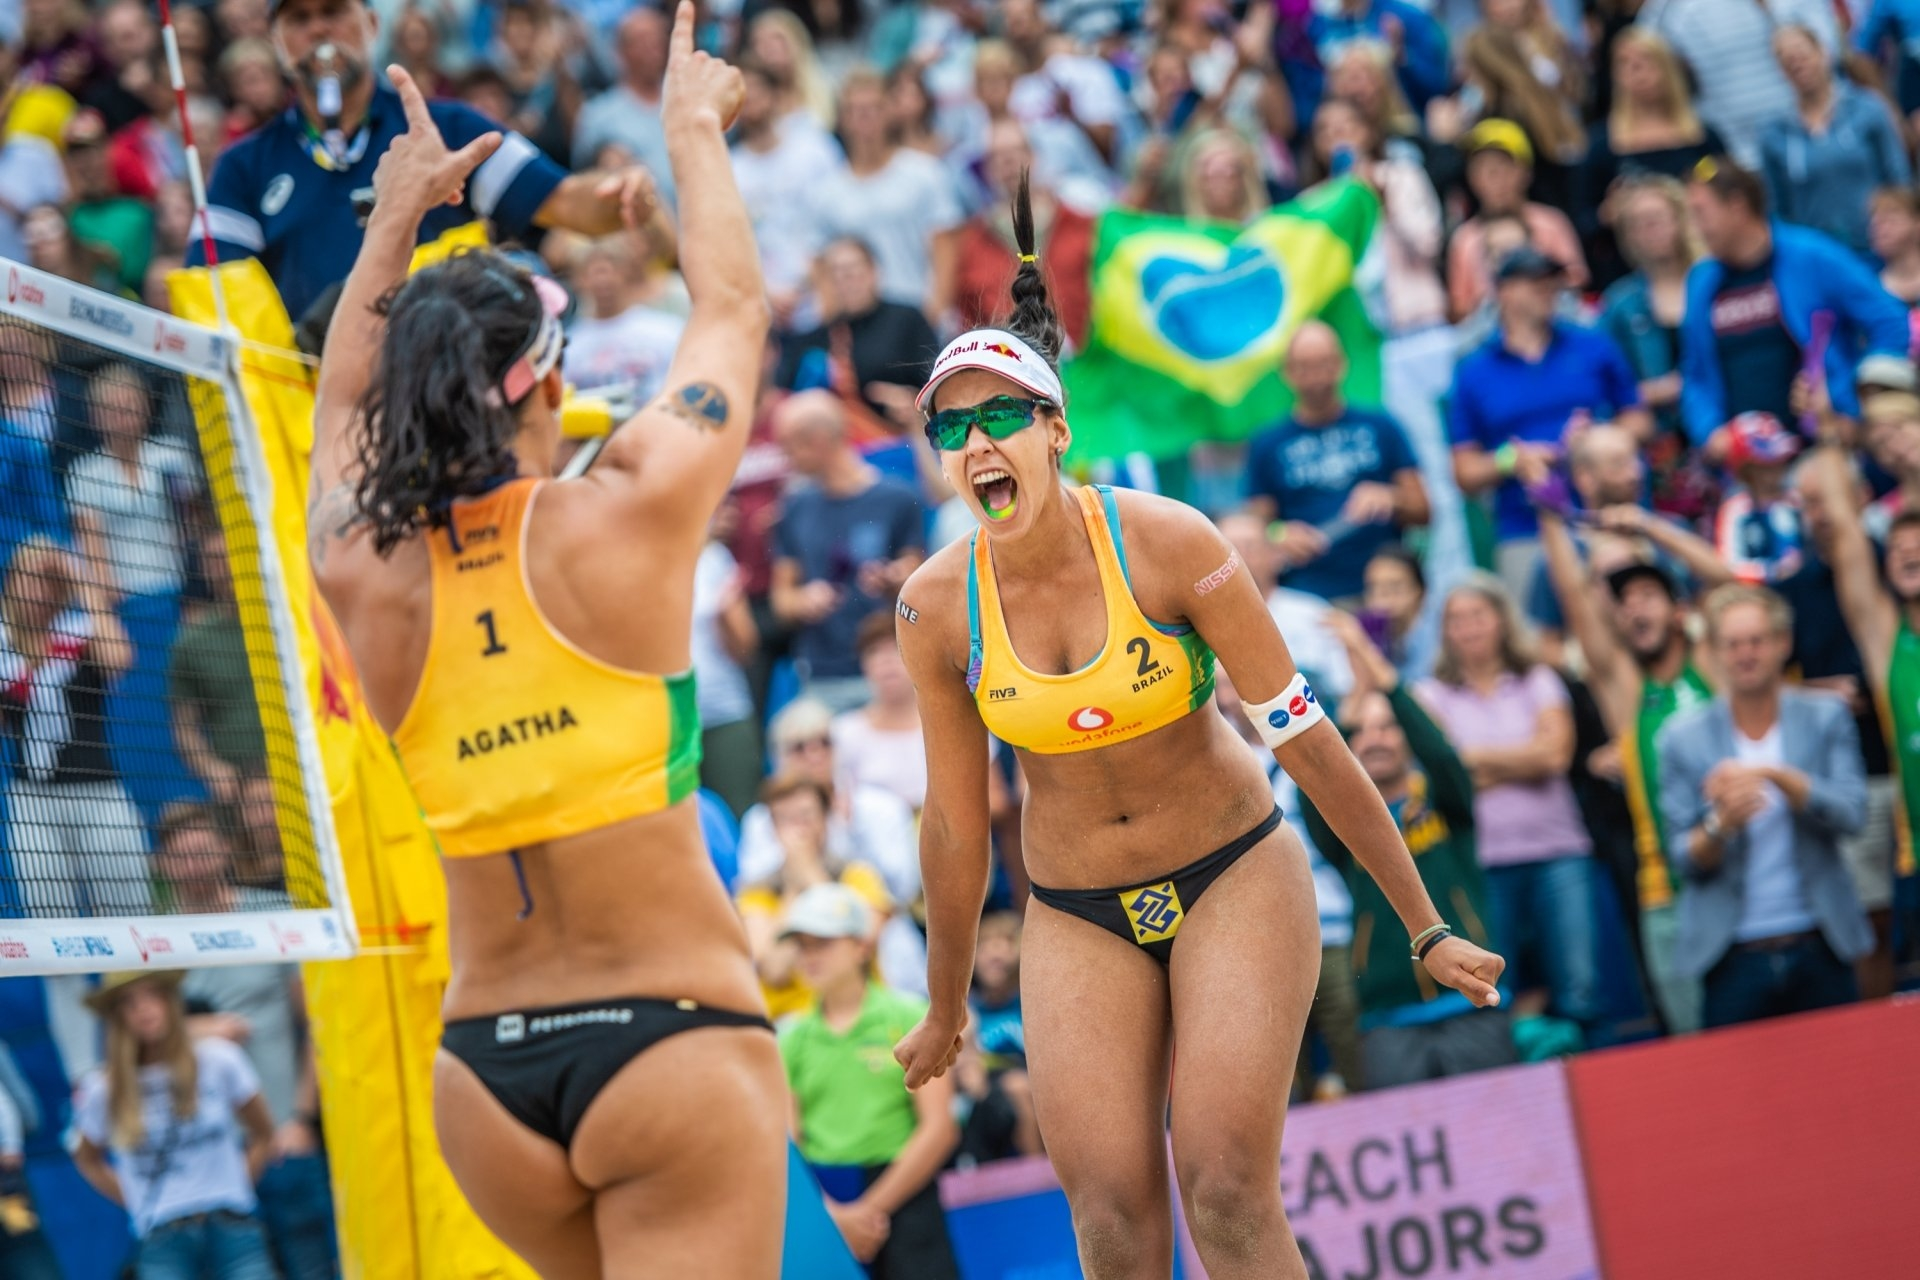 2018 World Tour Finals winners Ágatha and Duda will be among the teams fighting for Olympic qualification